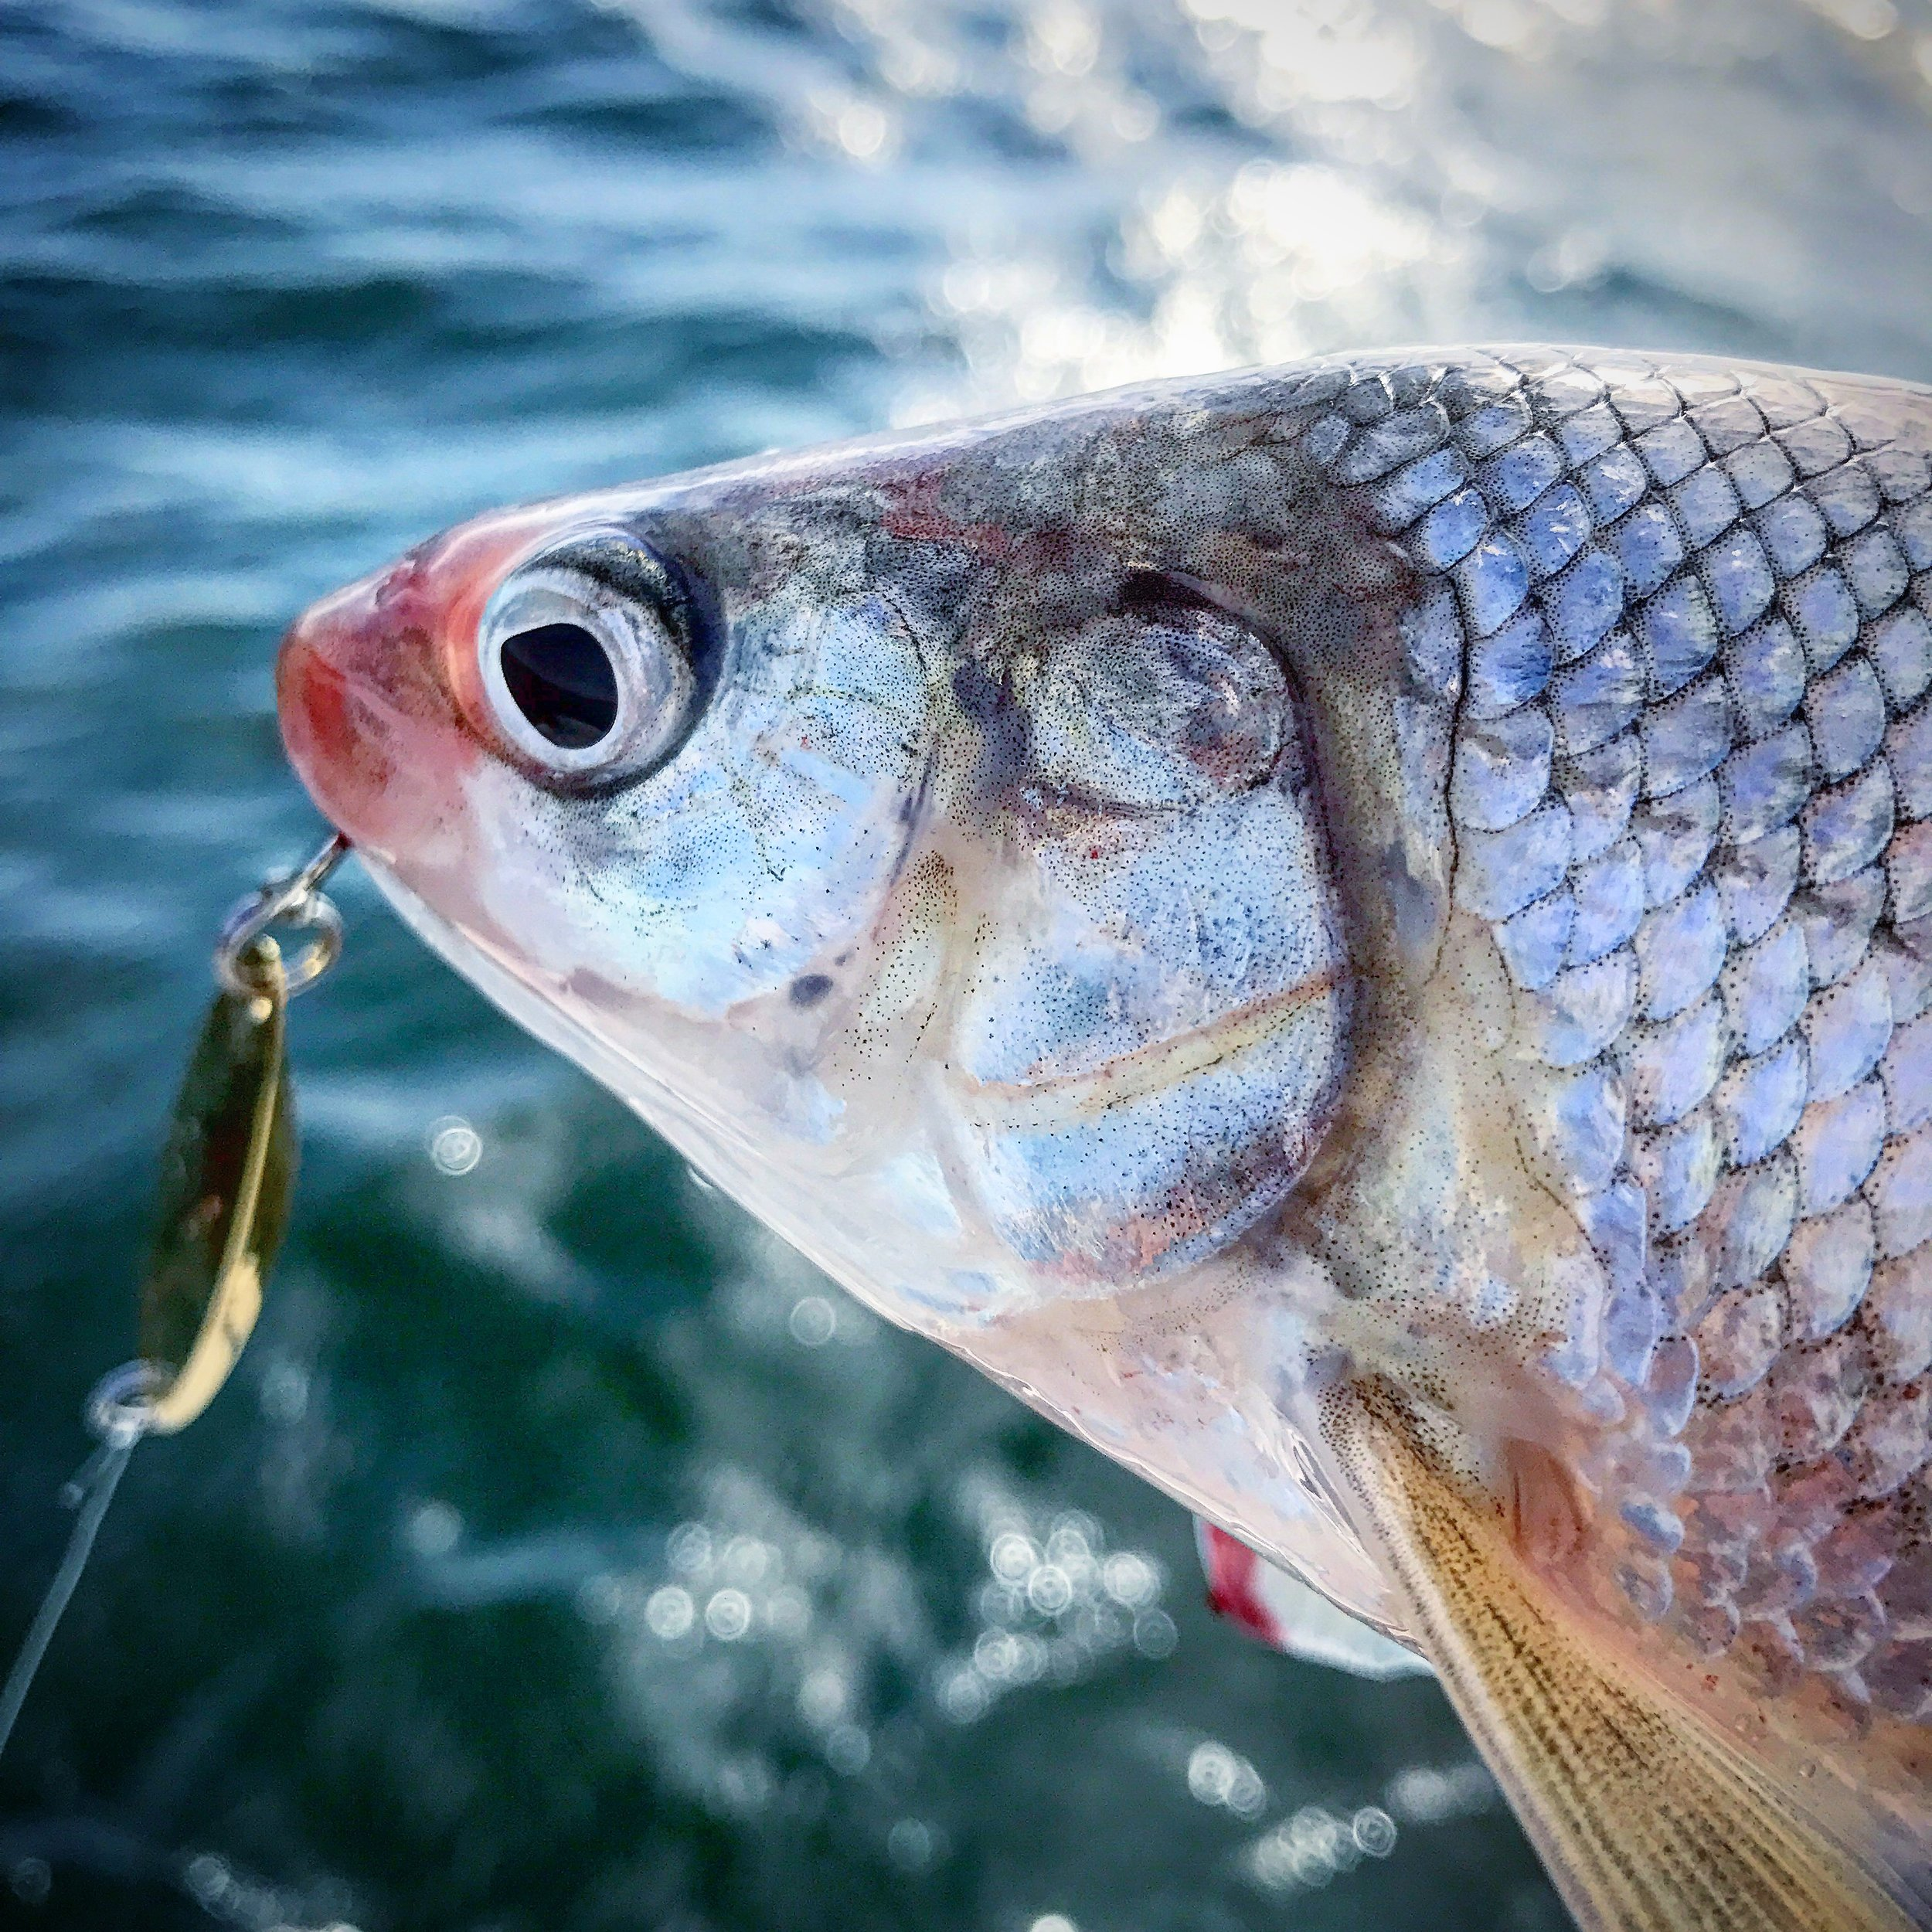 Whitefish are a great fish to target if you like jigging light tackle. There's plenty of them around and they're pretty easy to catch.